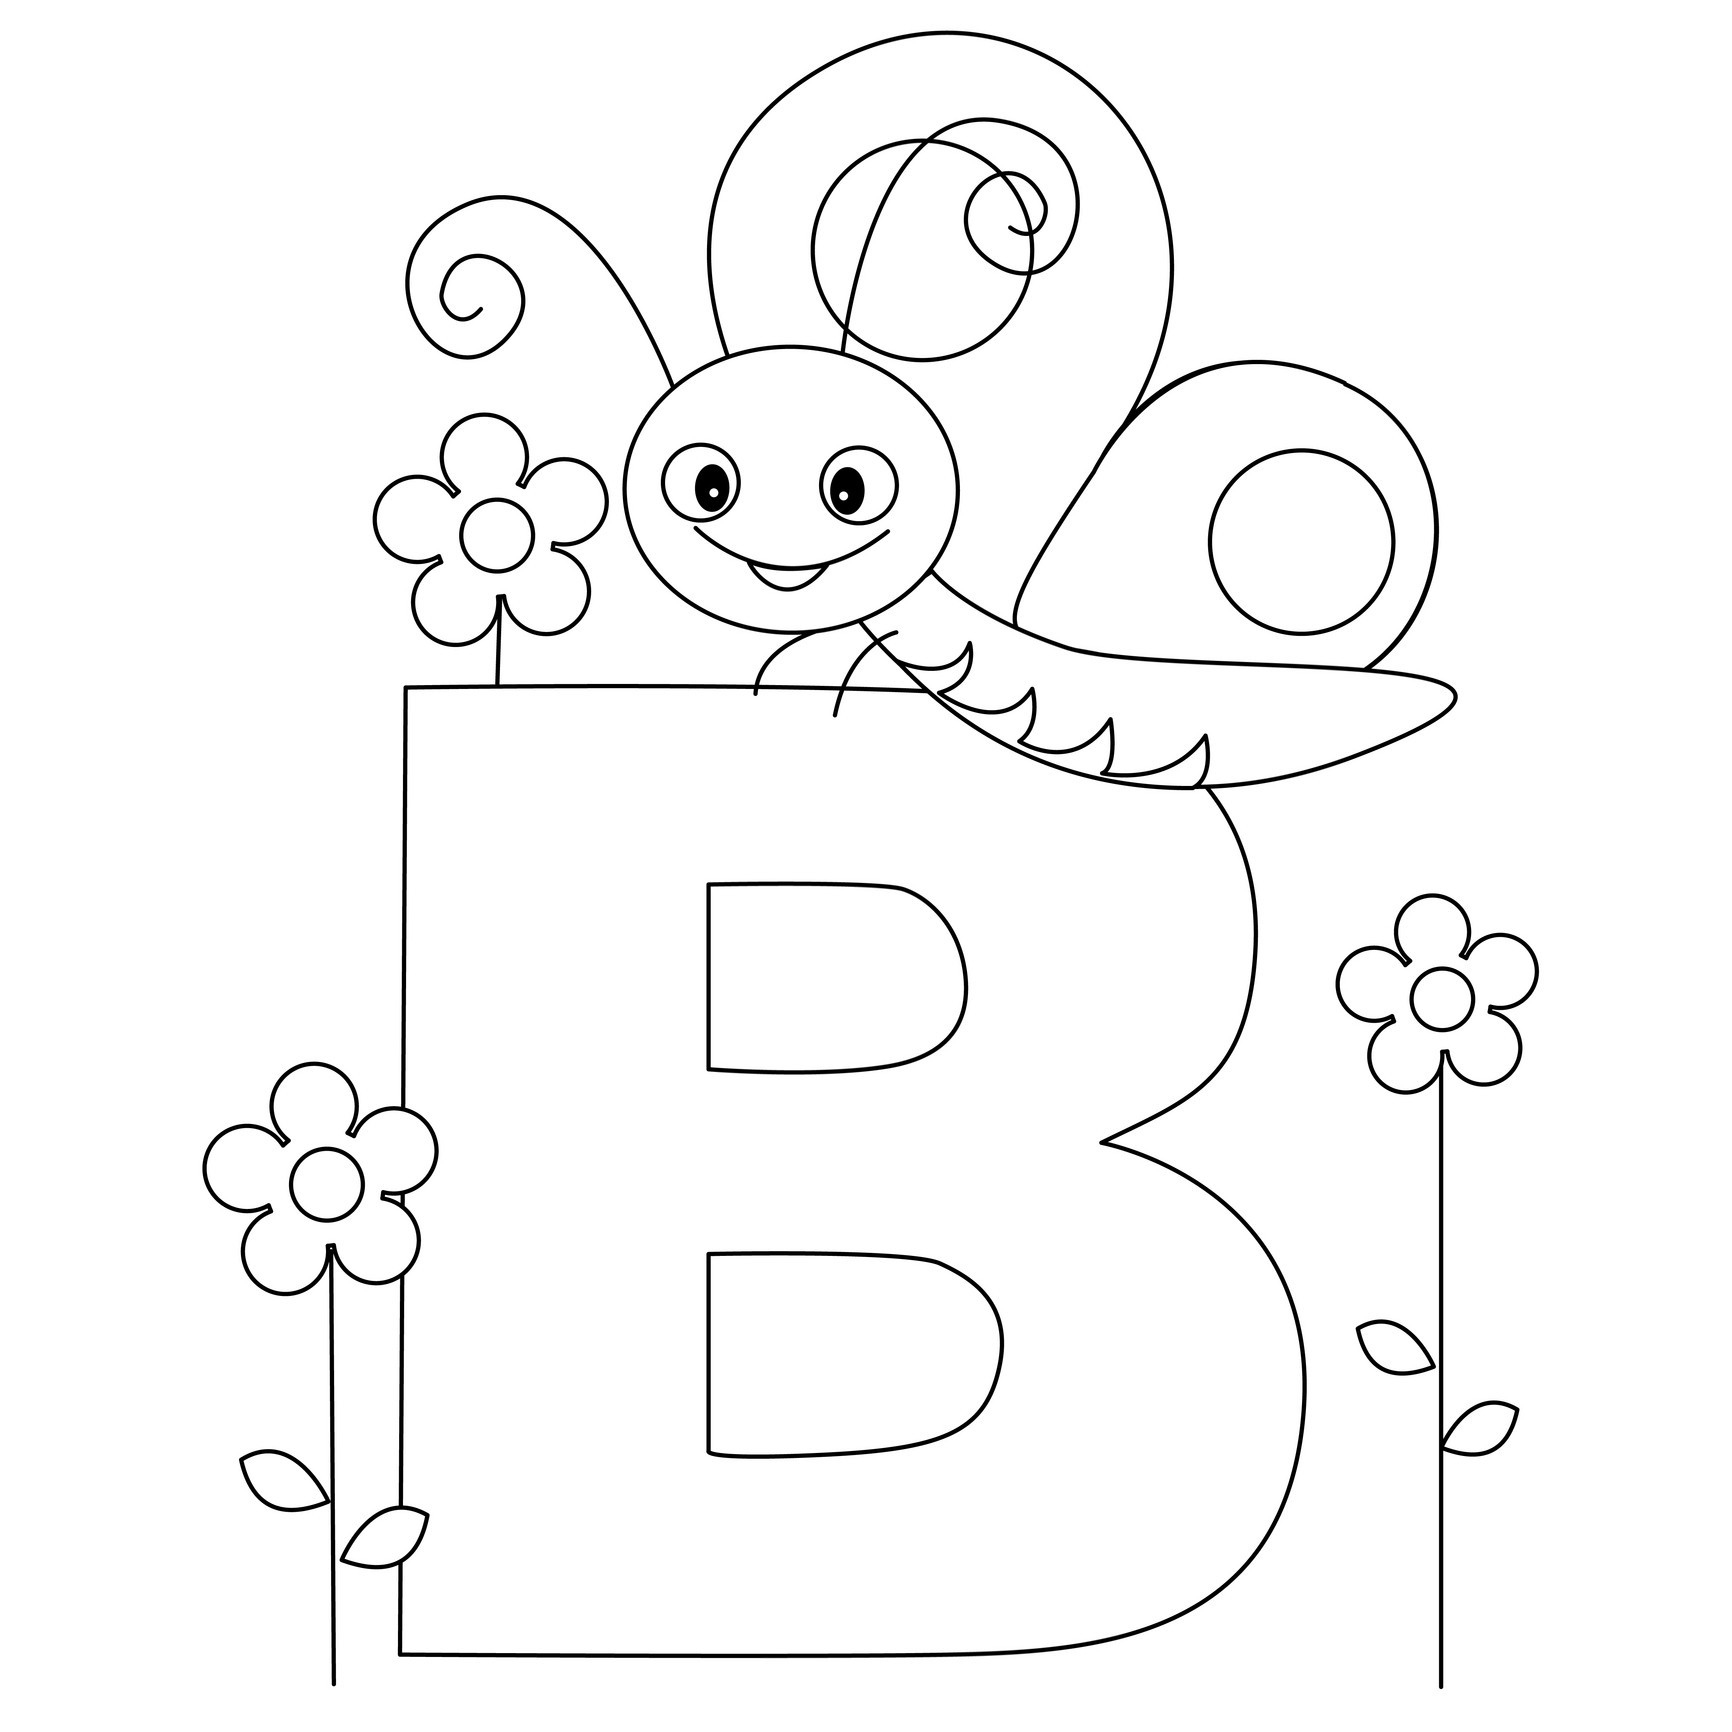 alphabet for coloring printable toddler coloring pages for kids alphabet for coloring